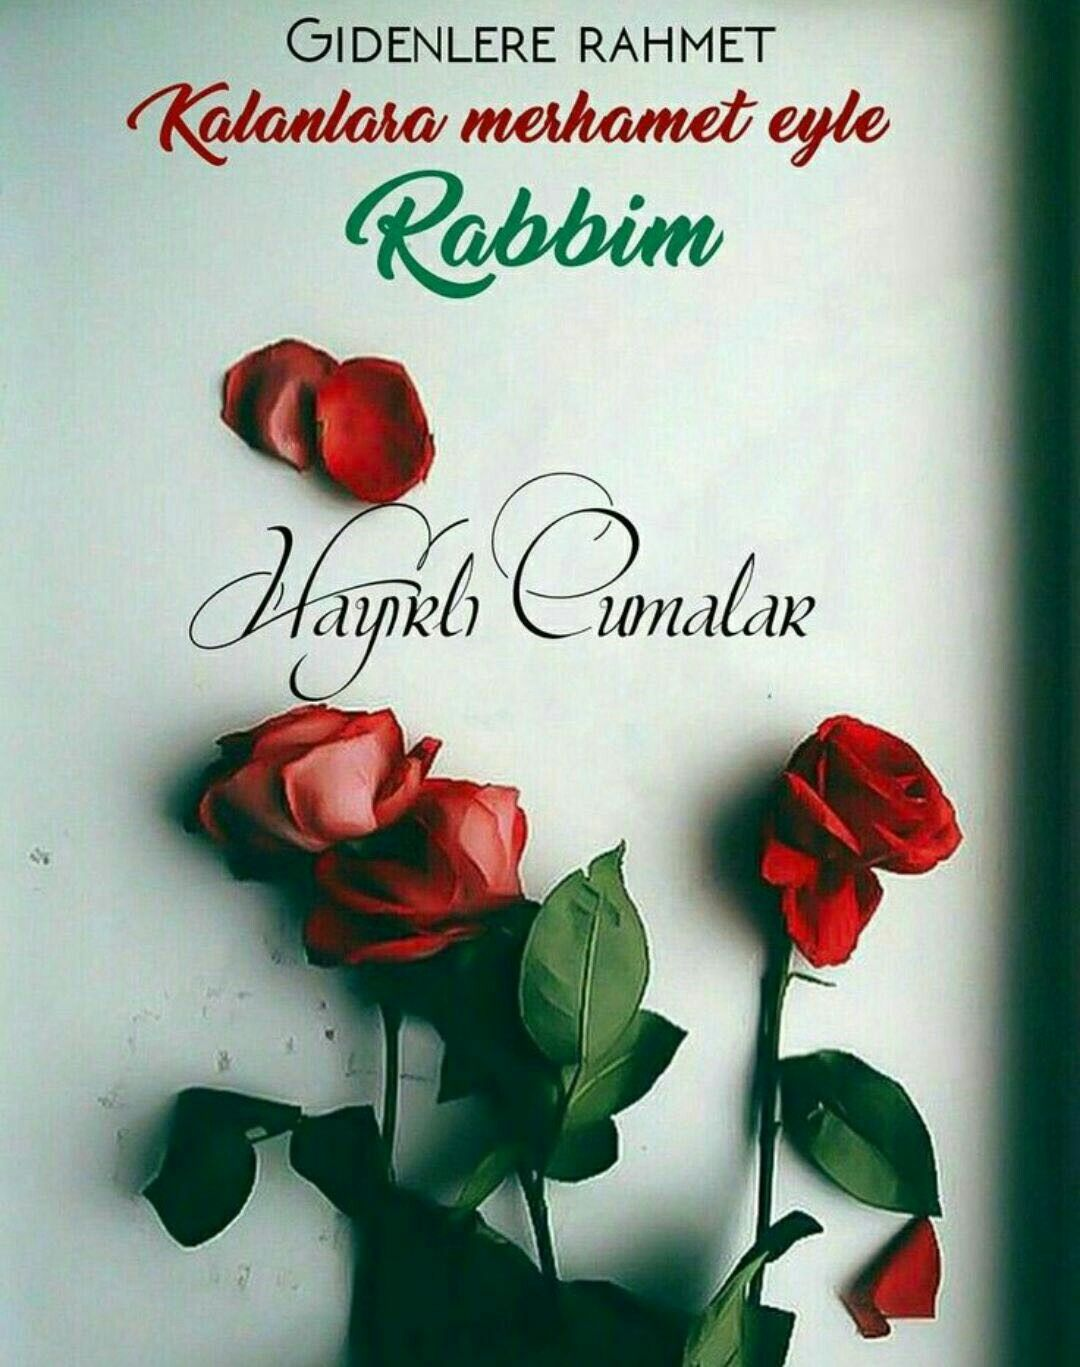 Pin By Hatice On Cuma Mesajlari Turkish Quotes Flower Wallpaper Book Cover